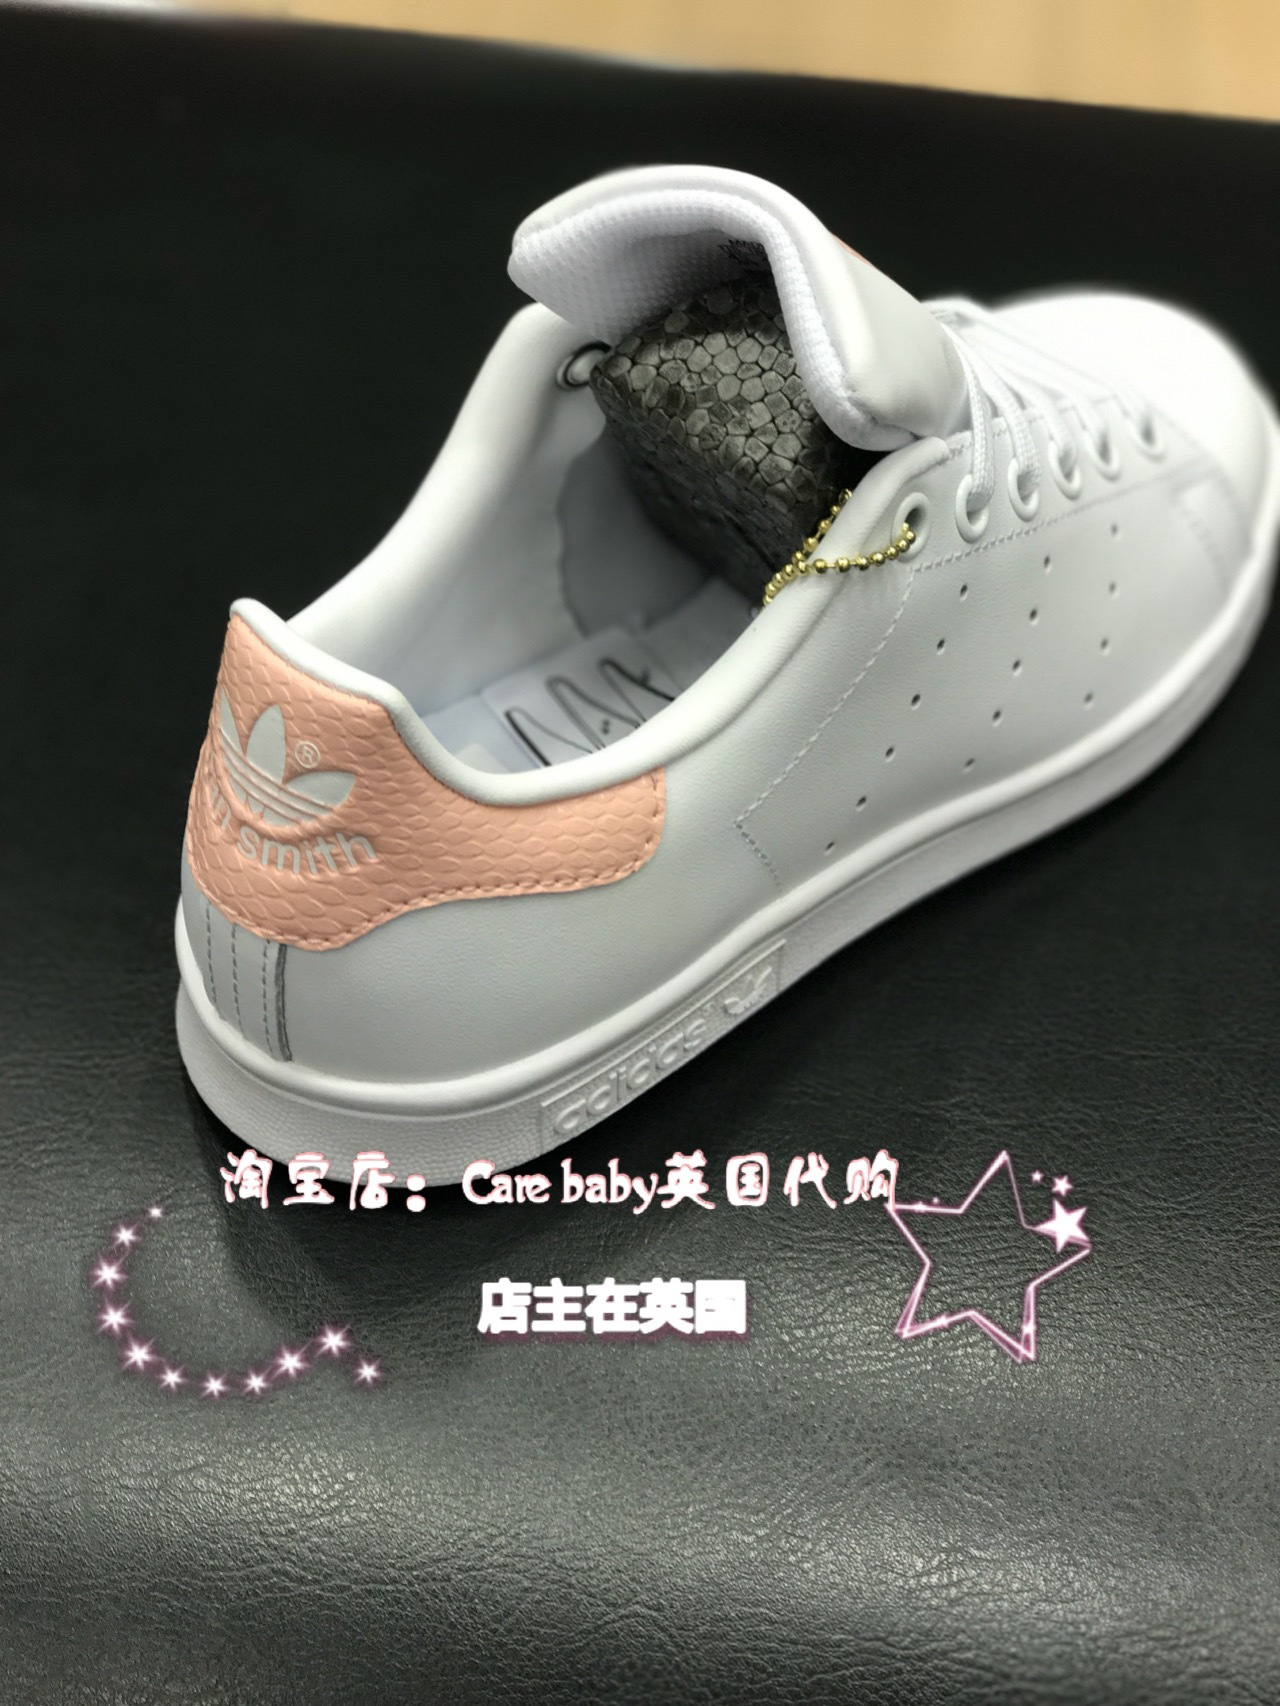 AdidasStanSmith Smith Adidas snake shaped powder tail small white shoes